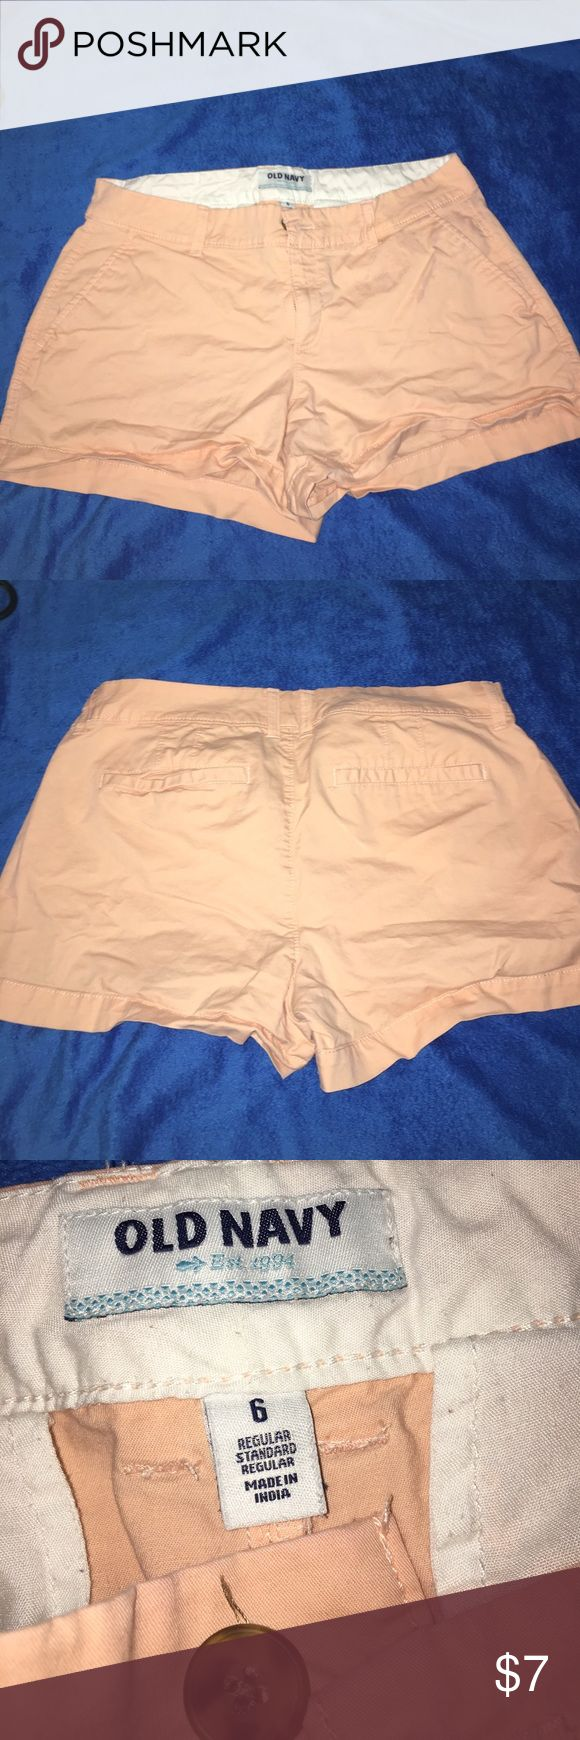 Peach shorts Peach colored shorts from Old Navy. Size 6. Never worn; smoke-free home. 10% off 2+ bundle. Old Navy Shorts